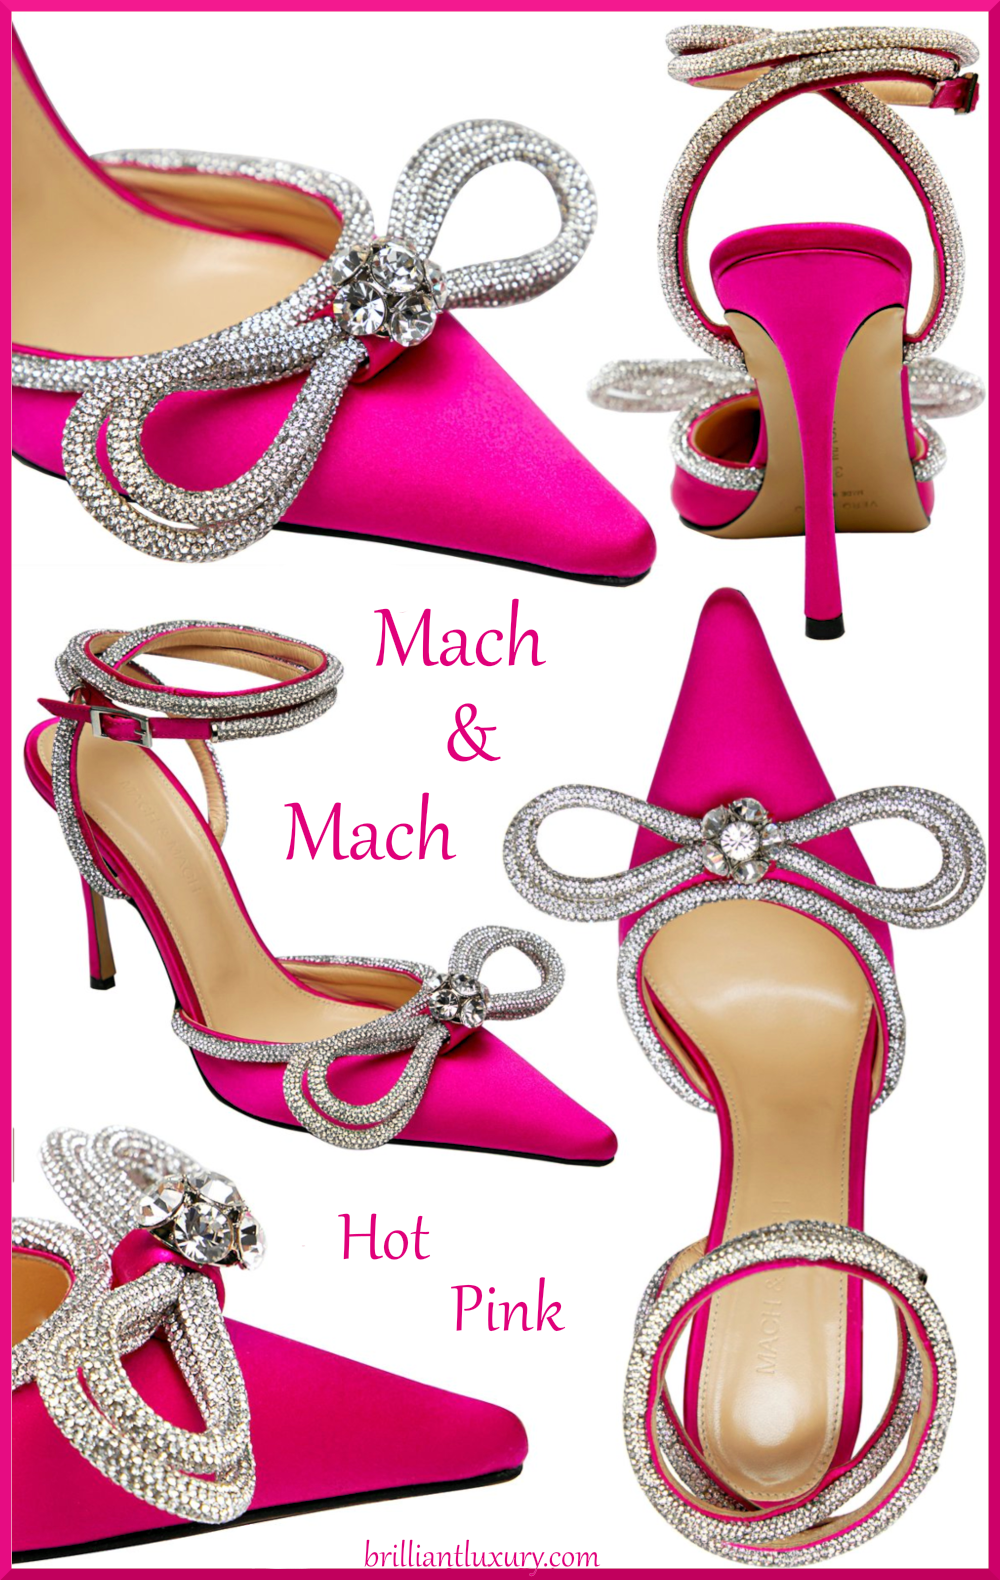 Mach & Mach hot pink crystal double bow pump colorful evening shoes #brilliantluxury